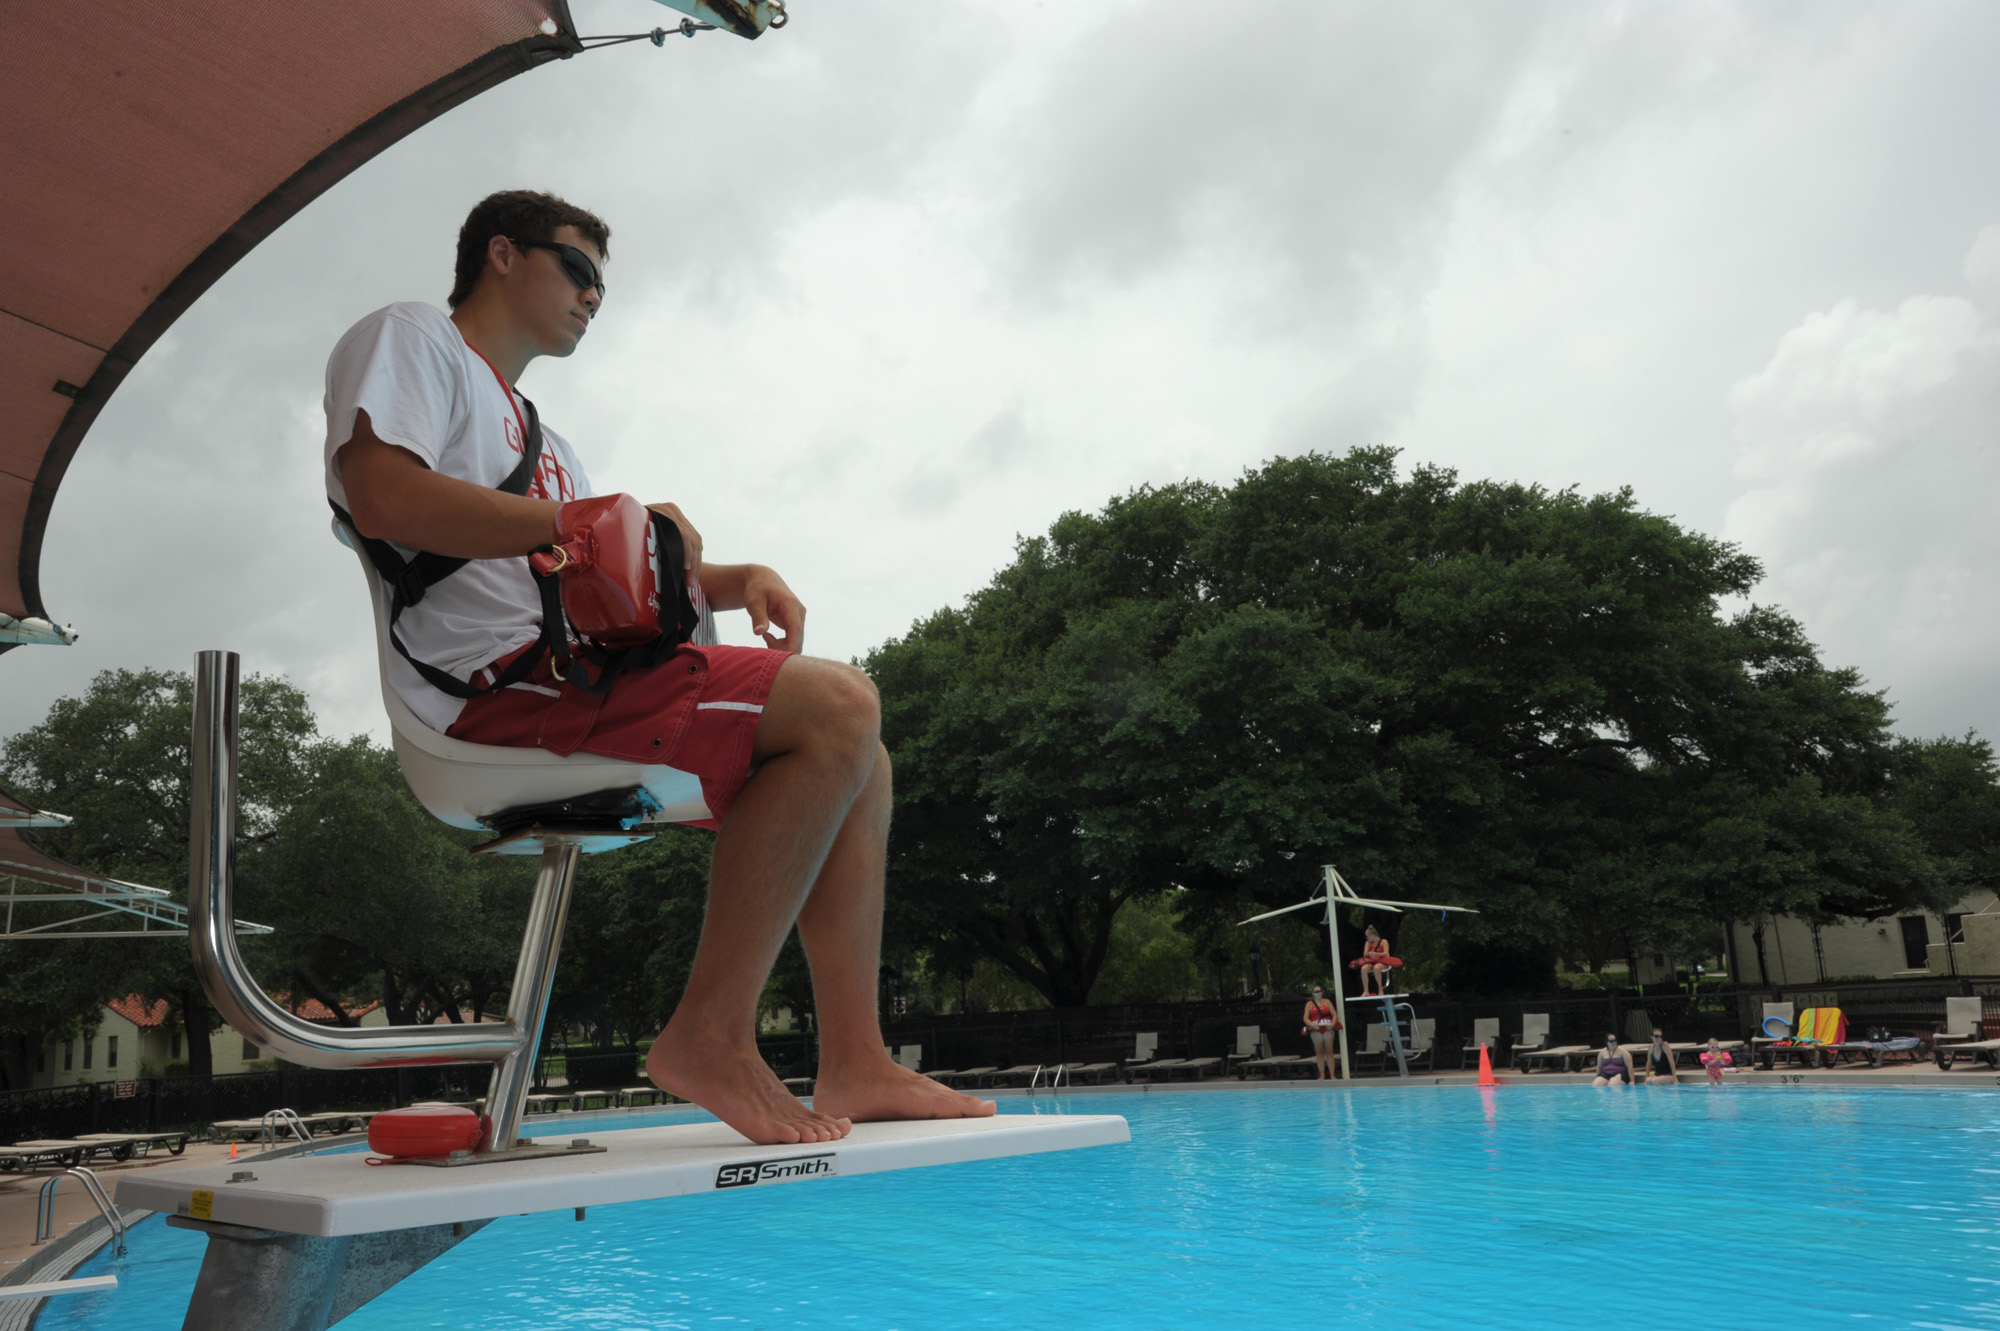 Jbsa To Train Pool Of Lifeguards In March Gt Joint Base San